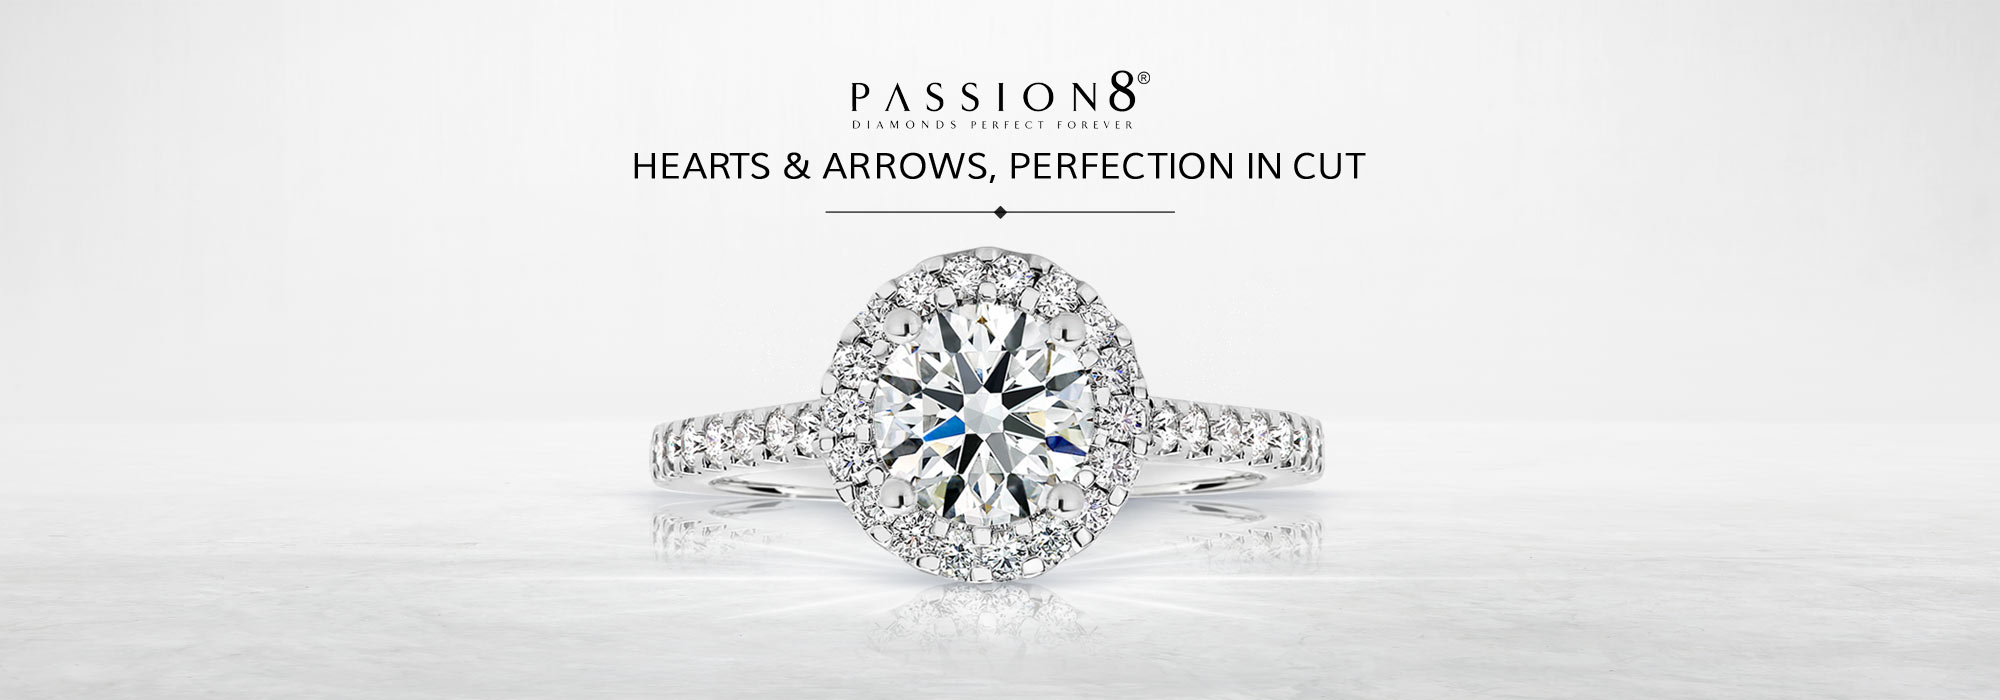 Hearts & Arrows, Perfection In Cut At Passion8